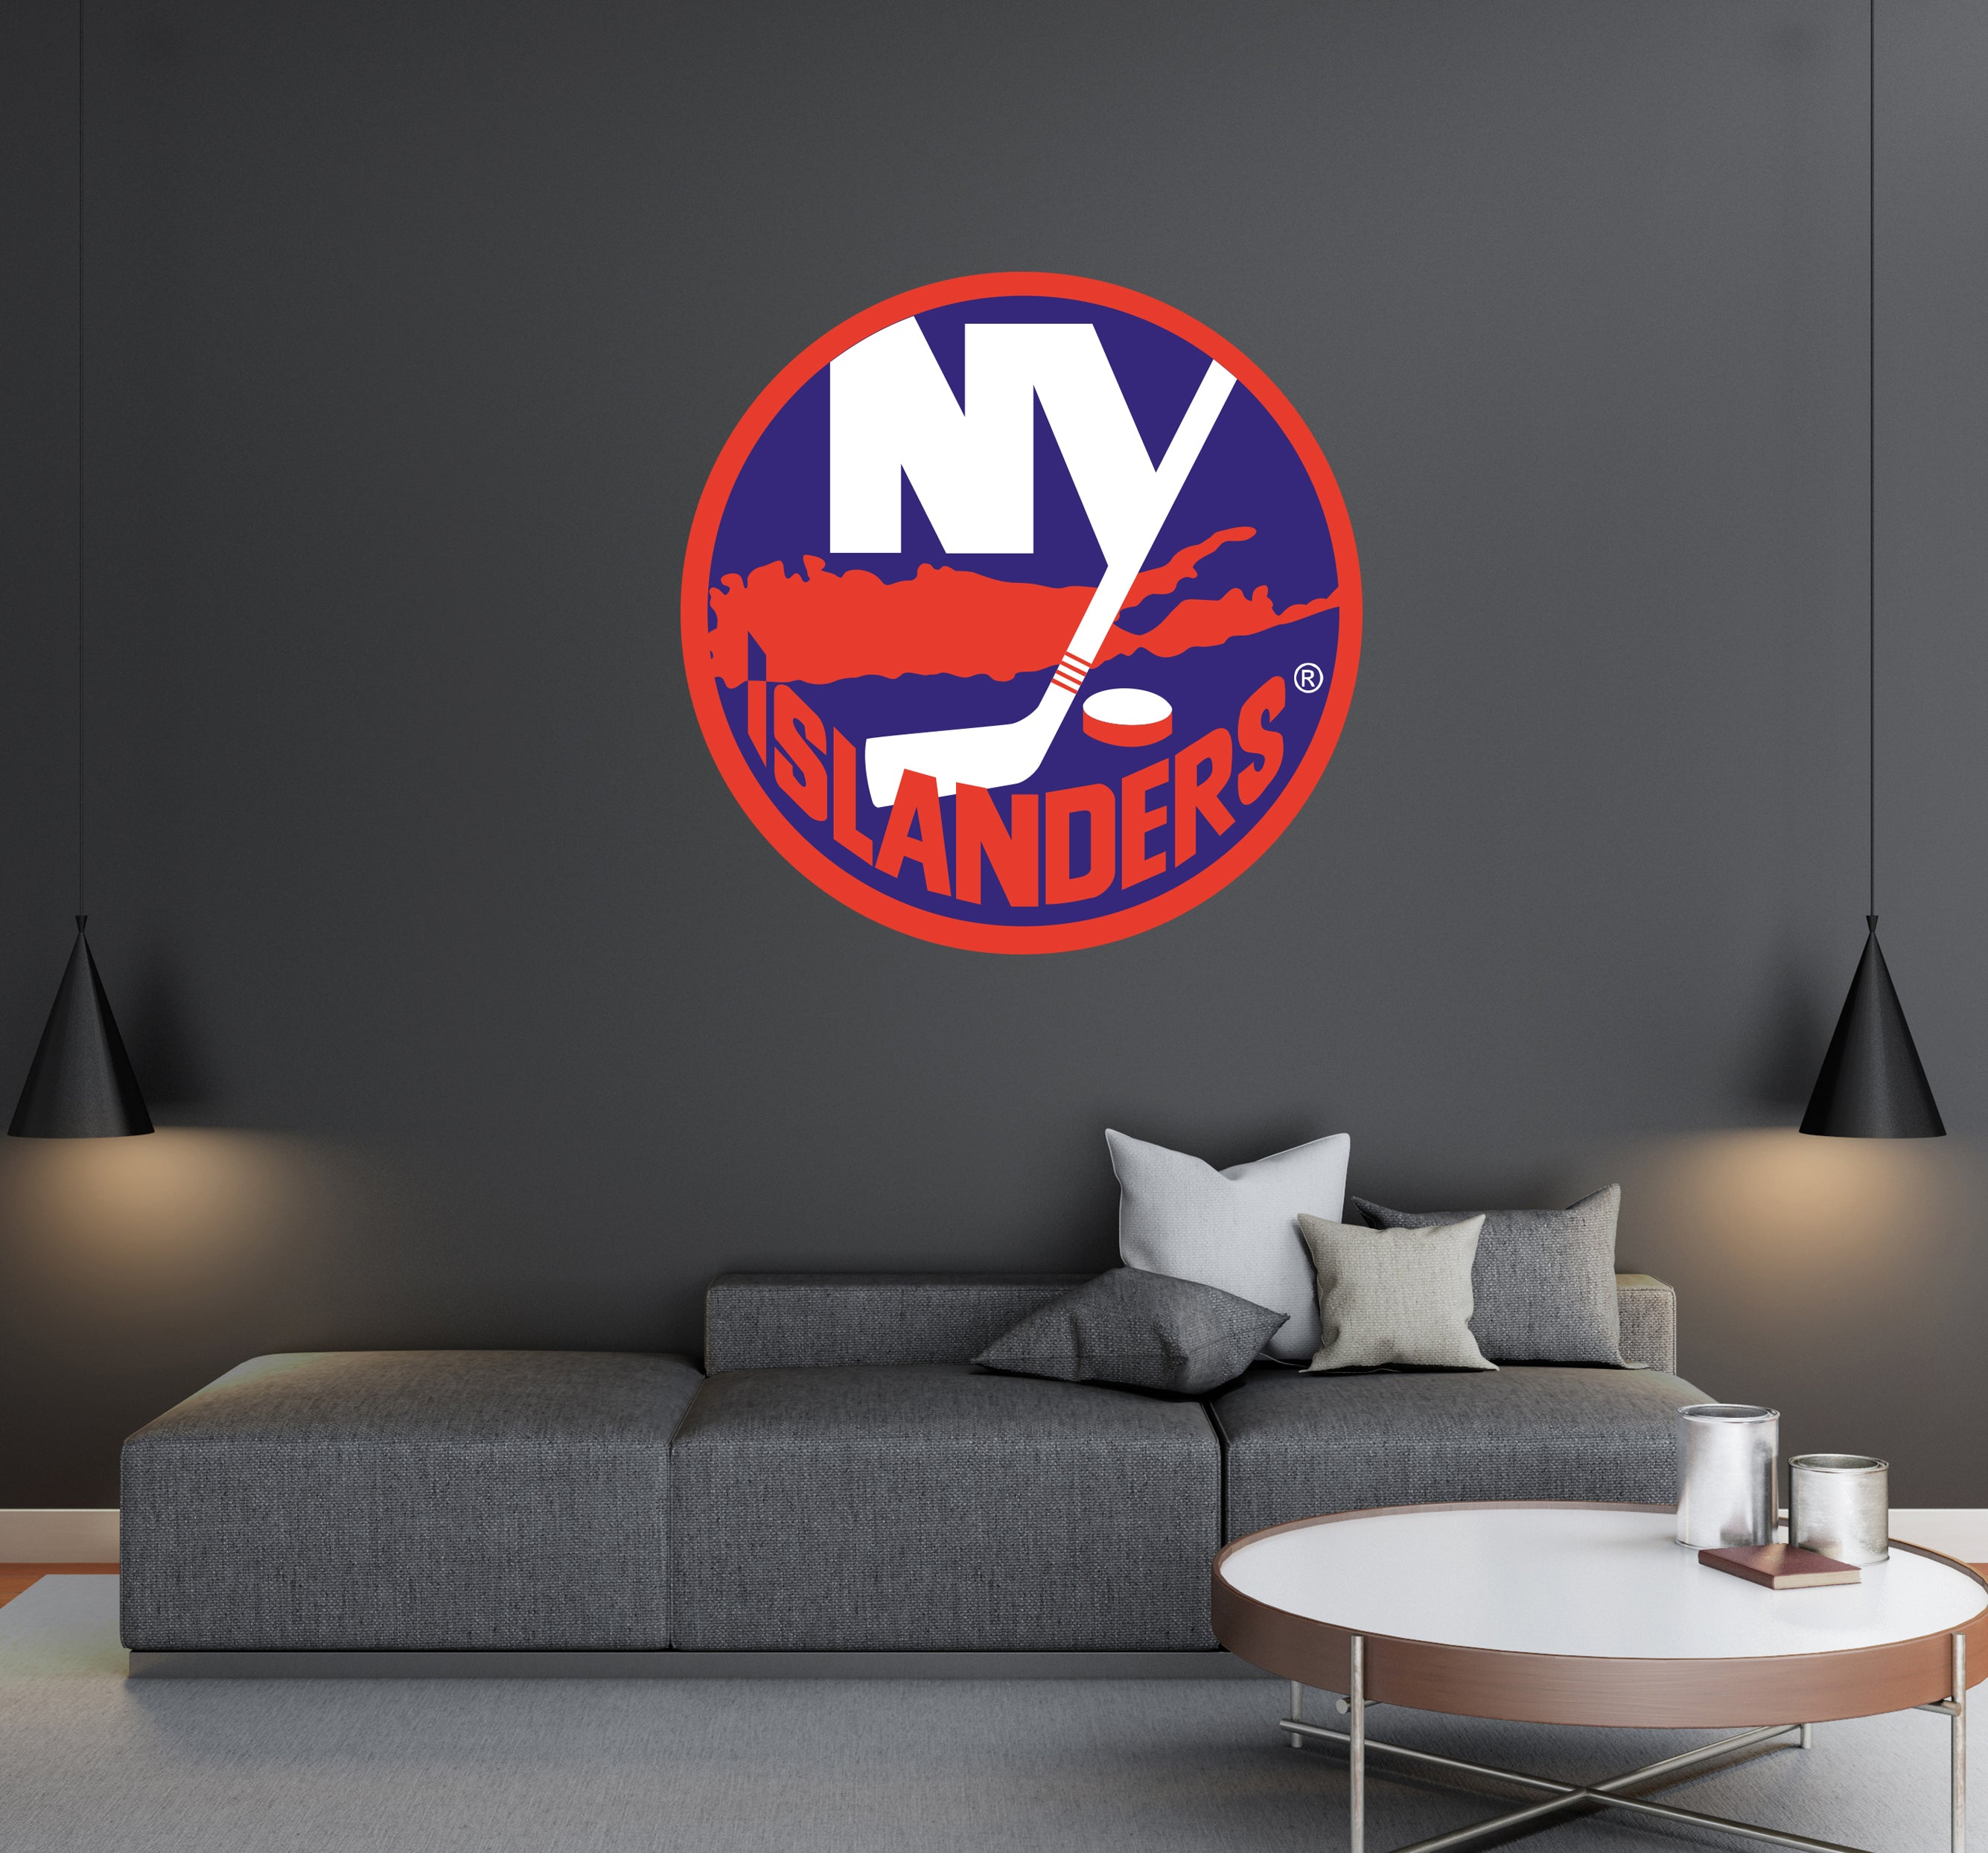 New York Islanders - NHL Hockey Team Logo - Wall Decal Removable & Reusable For Home Bedroom